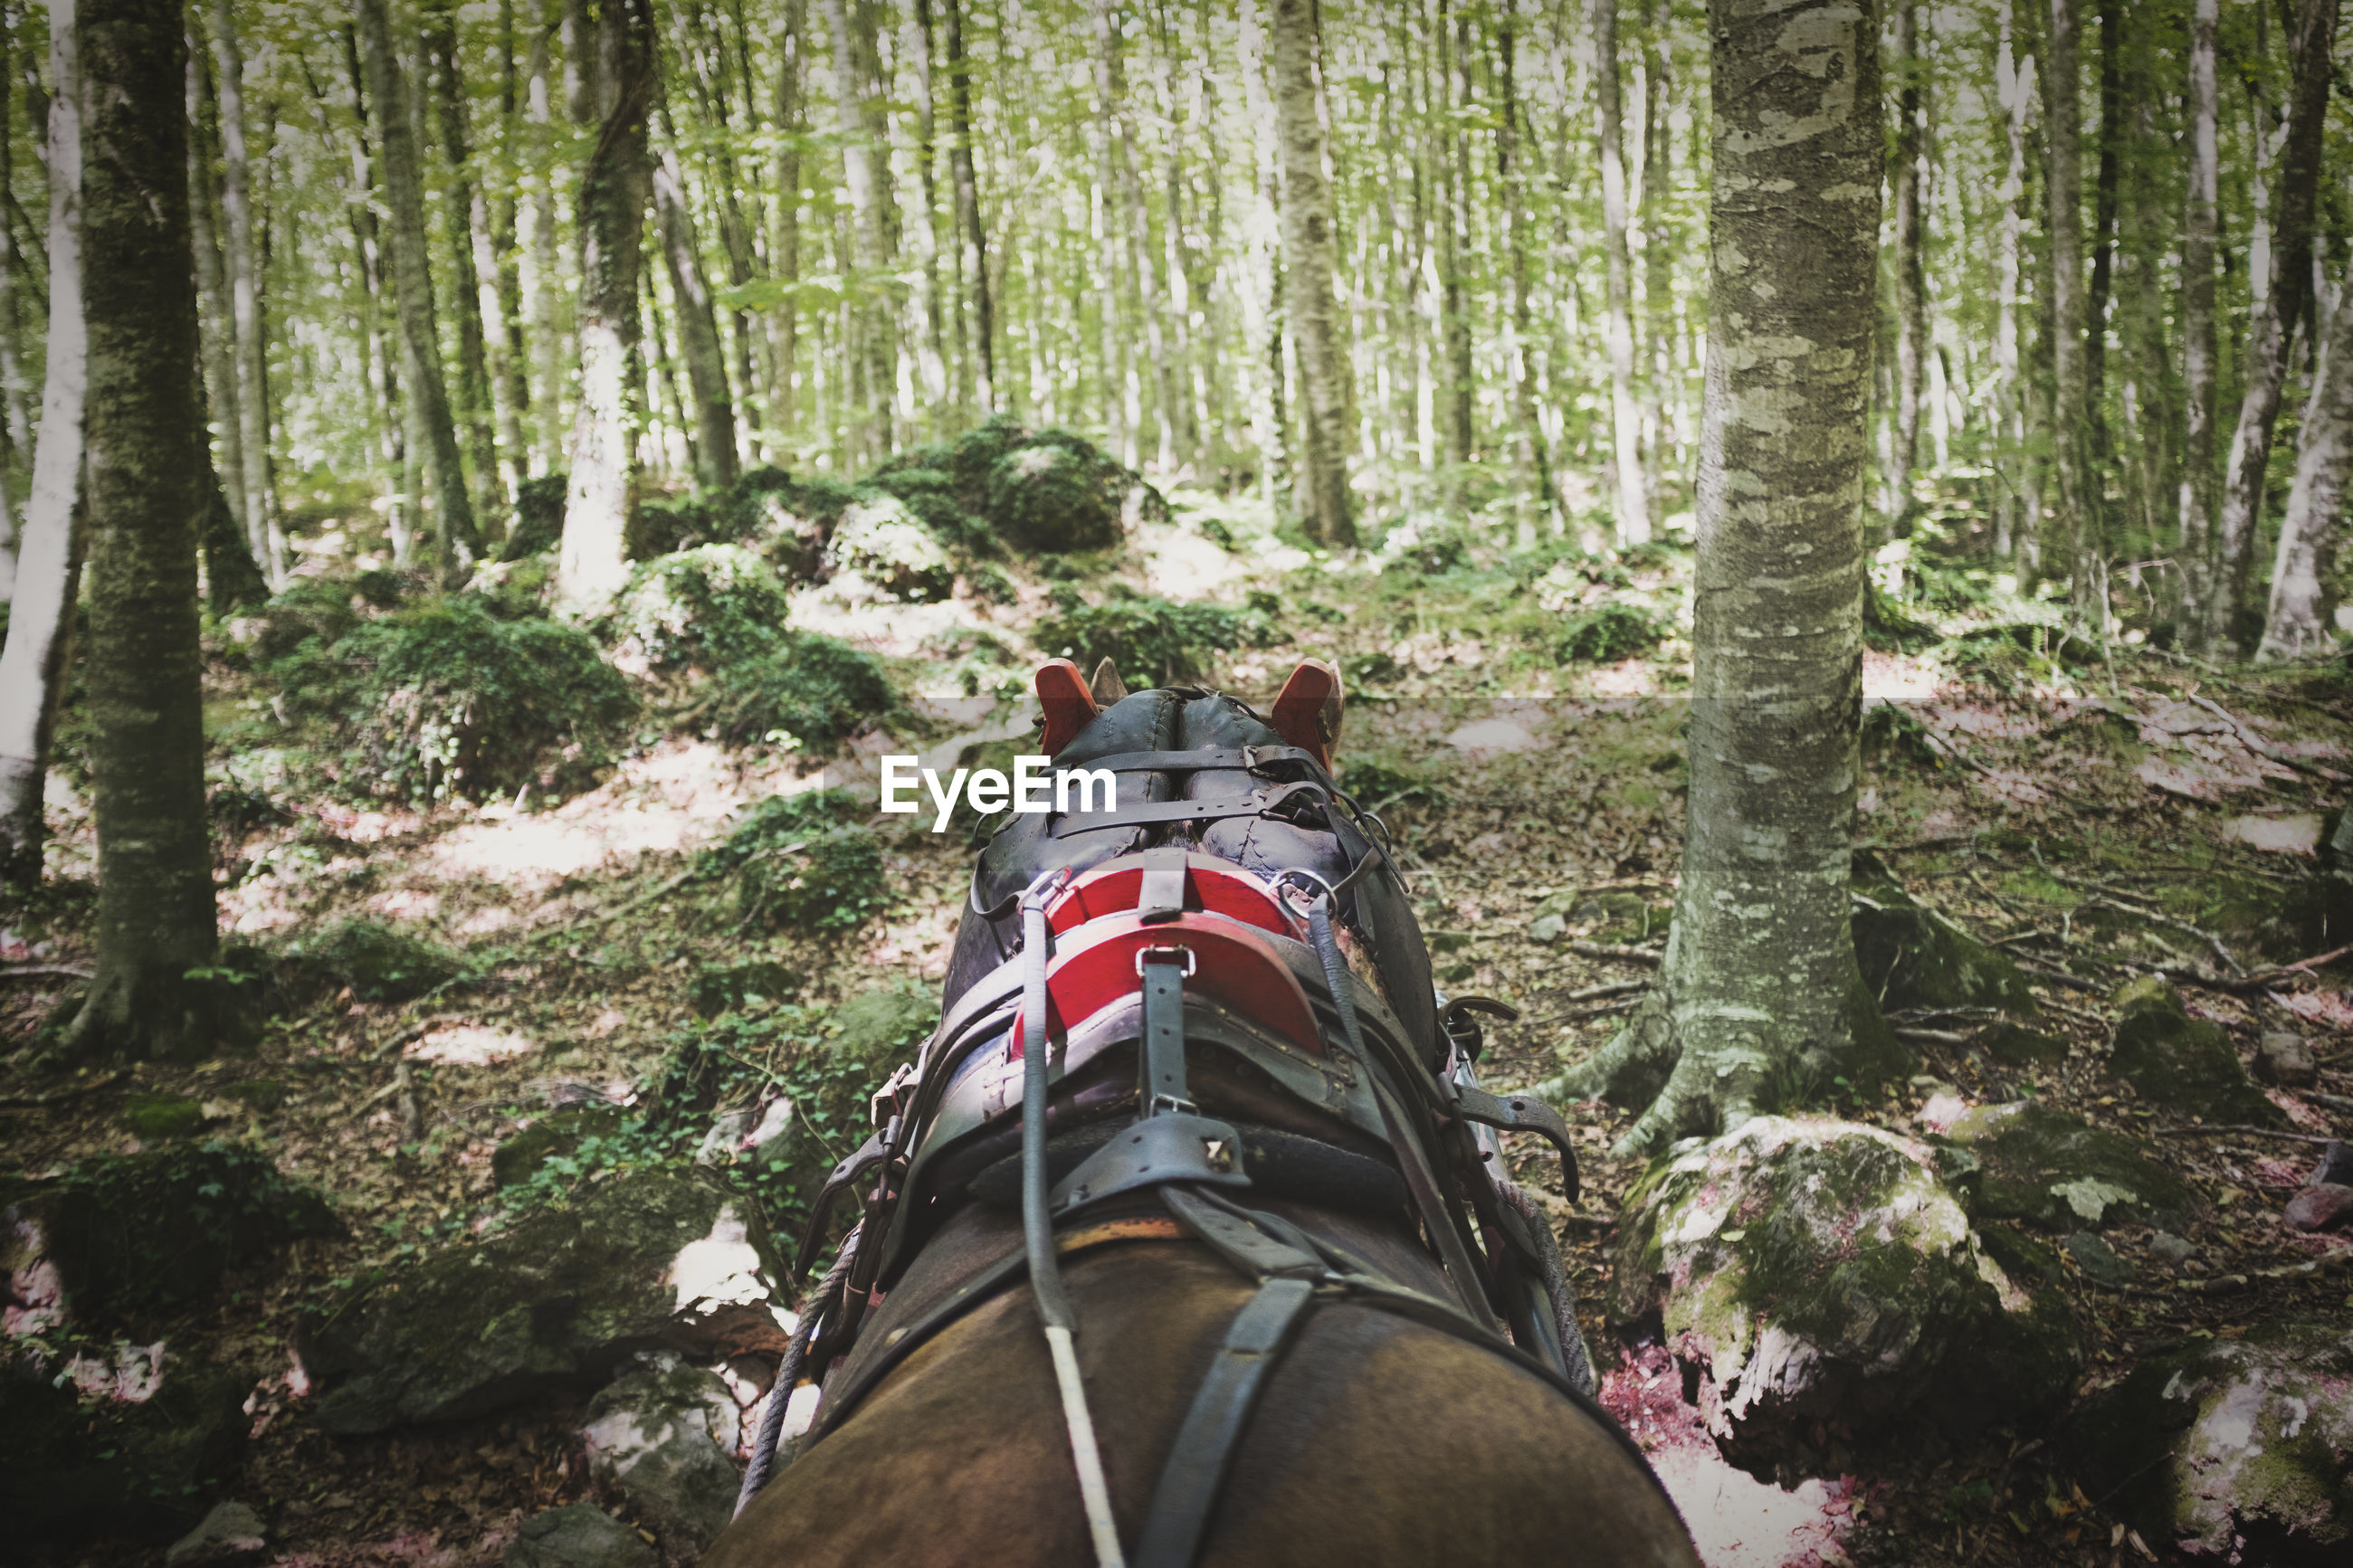 Horse standing amidst trees in forest